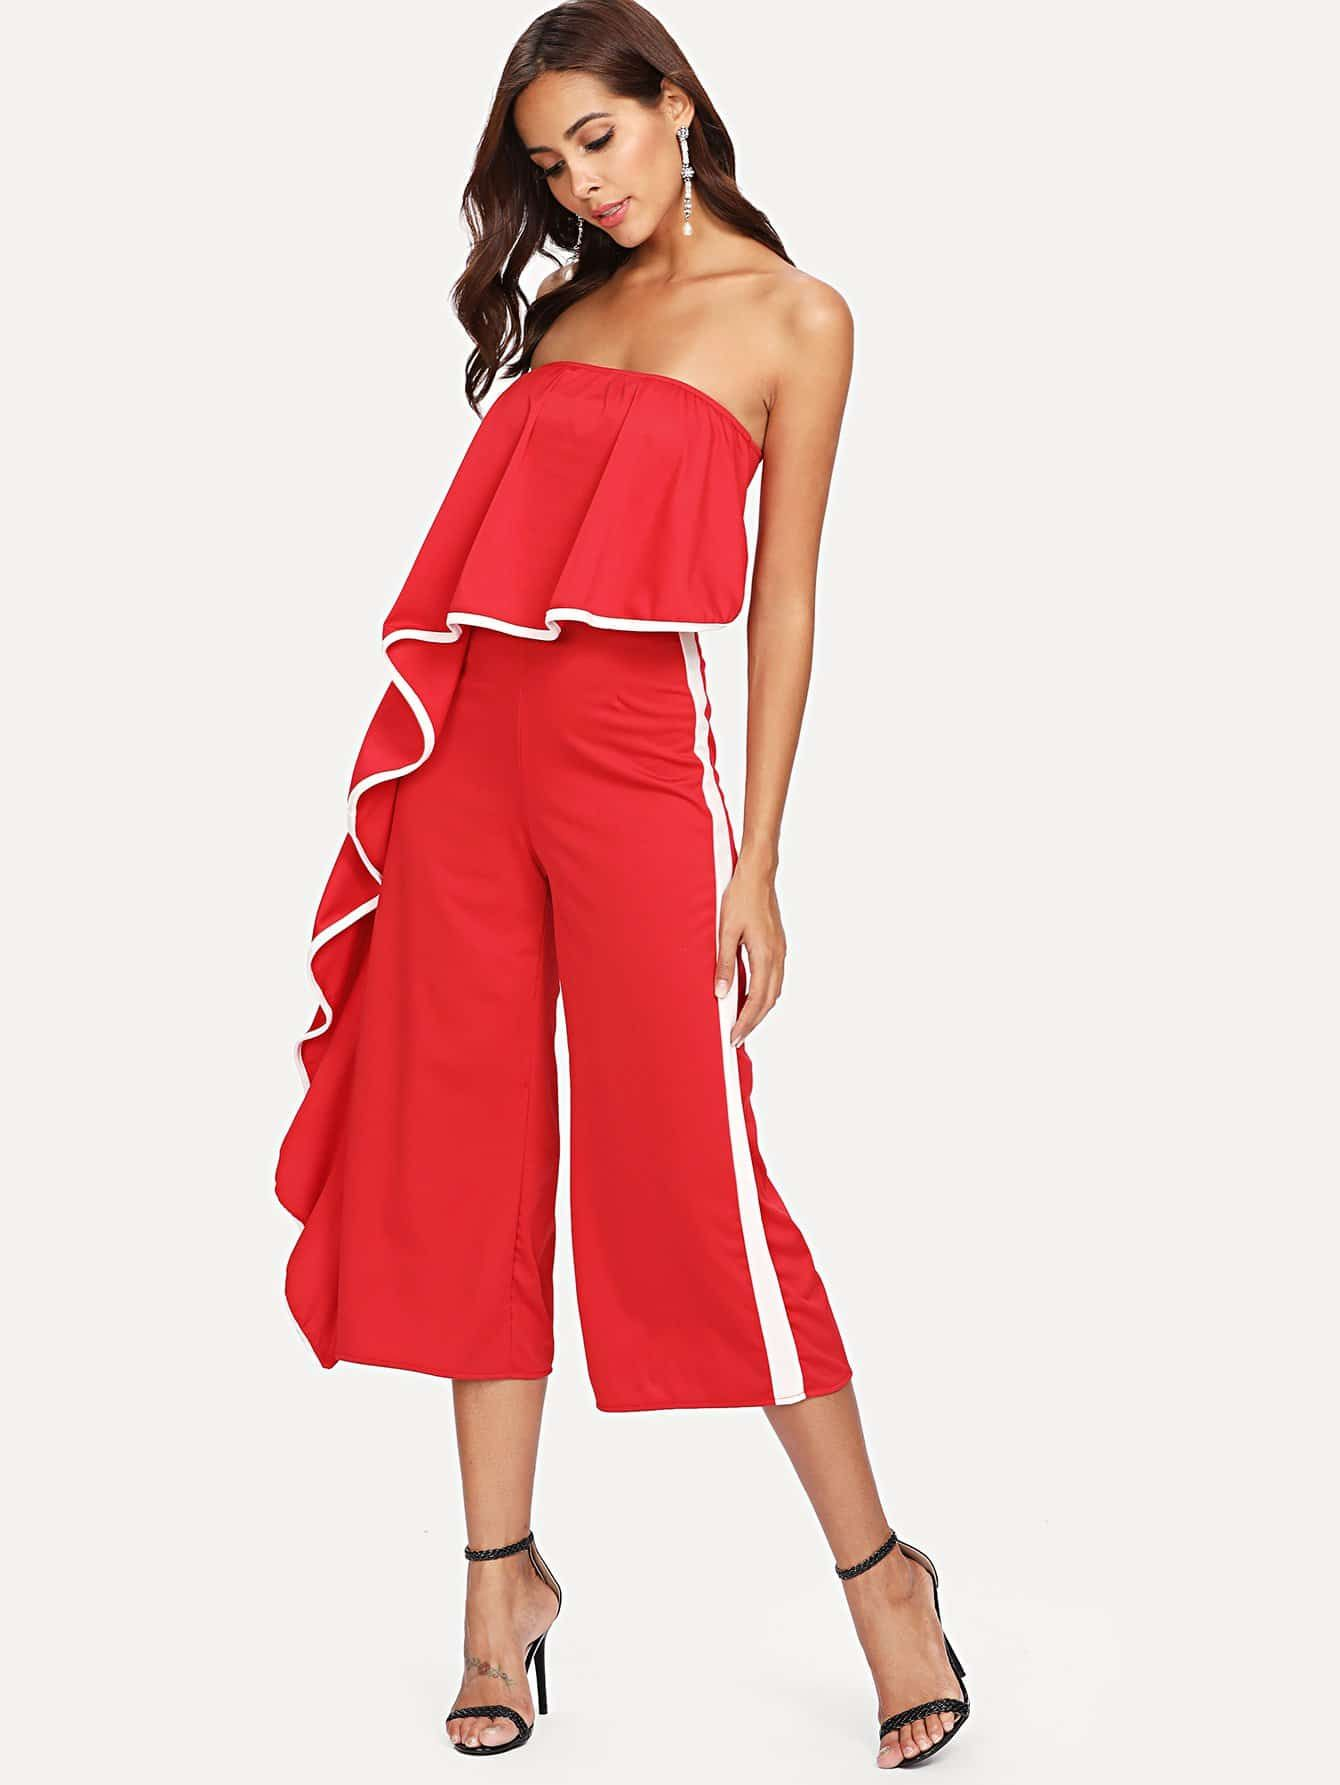 Contrast Trim Frill Strapless Jumpsuit #discounted #fashion #moda #product #trend #women #girls